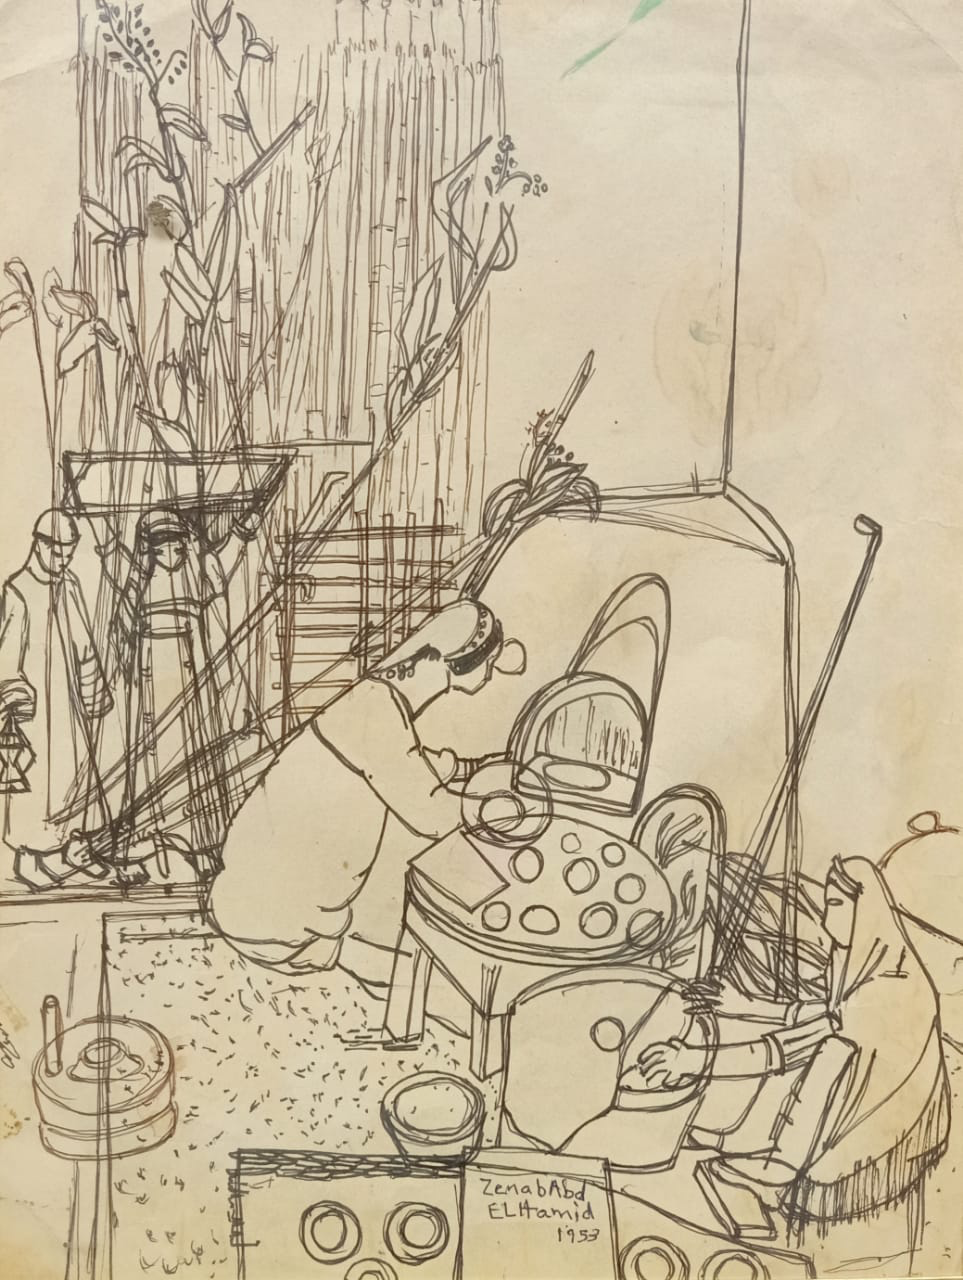 ZENAB ABD EL HAMID (1919-2002) 40 x 55 cm  Ink on paper Signed and dated 1957 middle